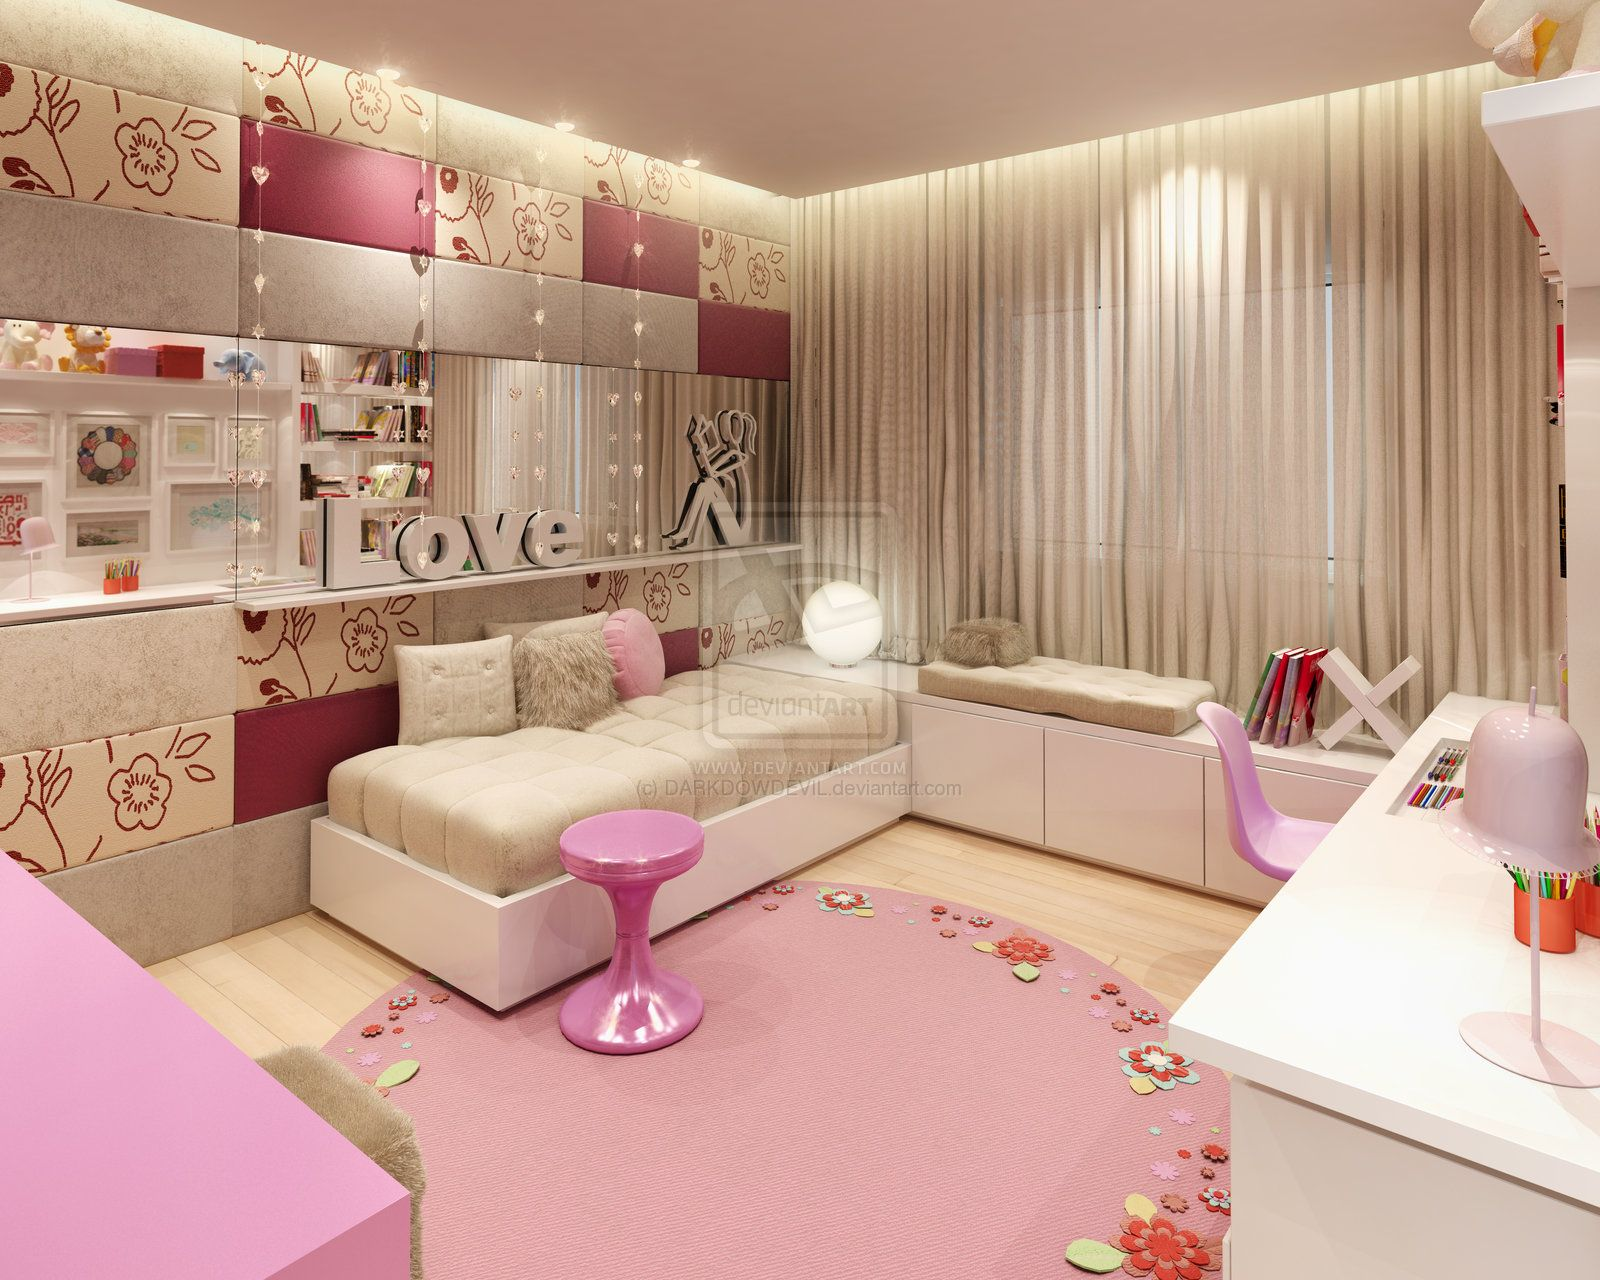 Kids Bedroom For Teenage Girls 30 dream interior design ideas for teenage girl's rooms | bedrooms